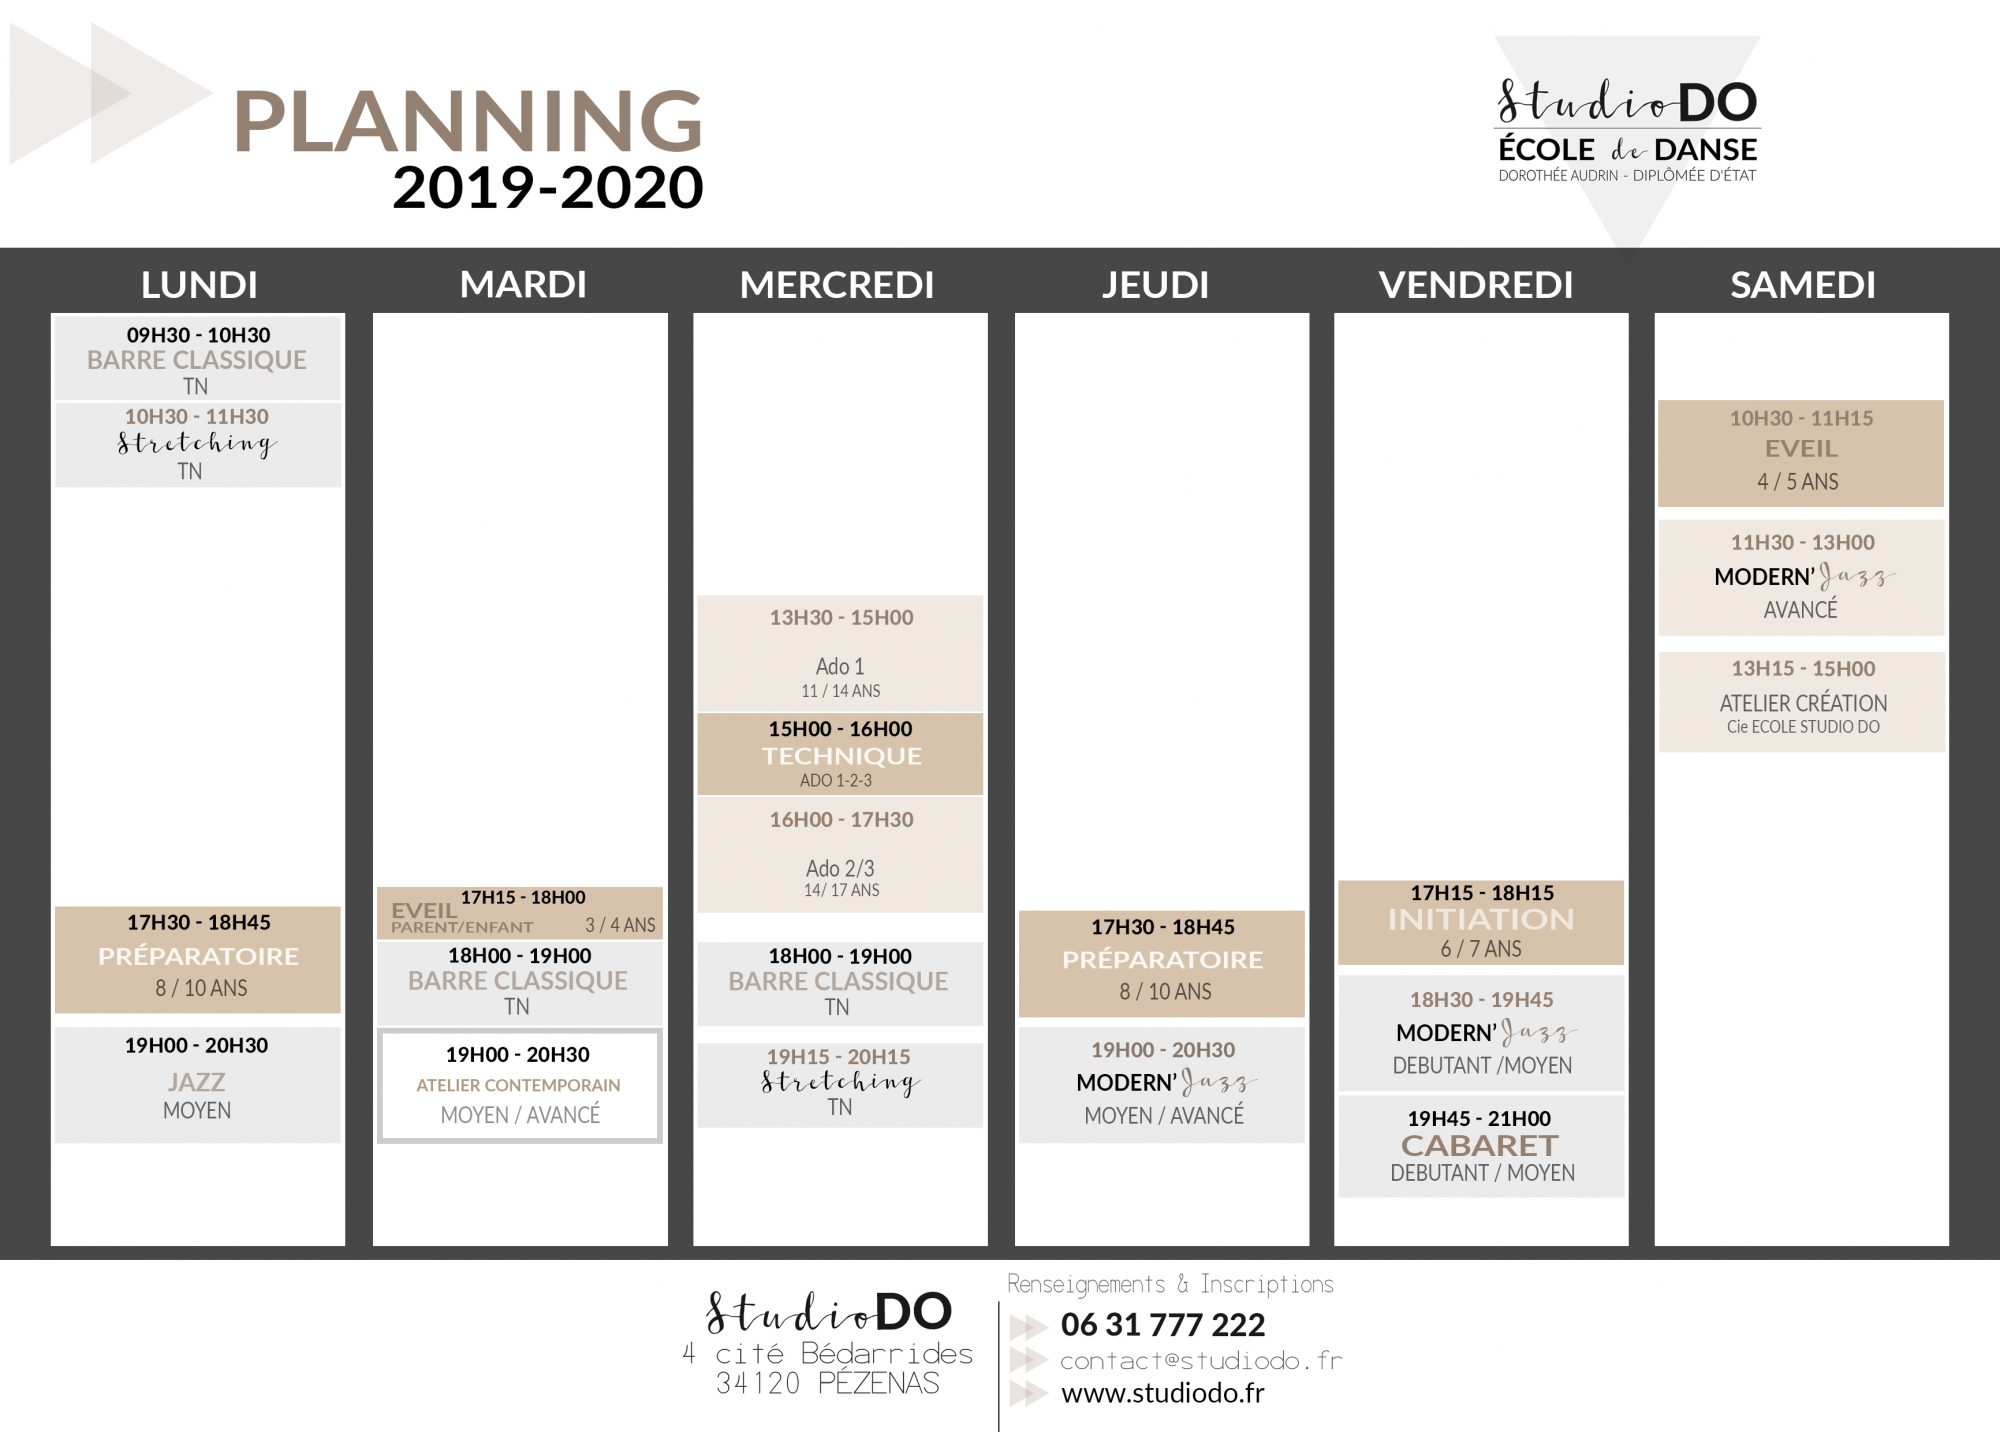 STUDIO DO - PLANNING HEBDOMADAIRE 2019-2020 oct